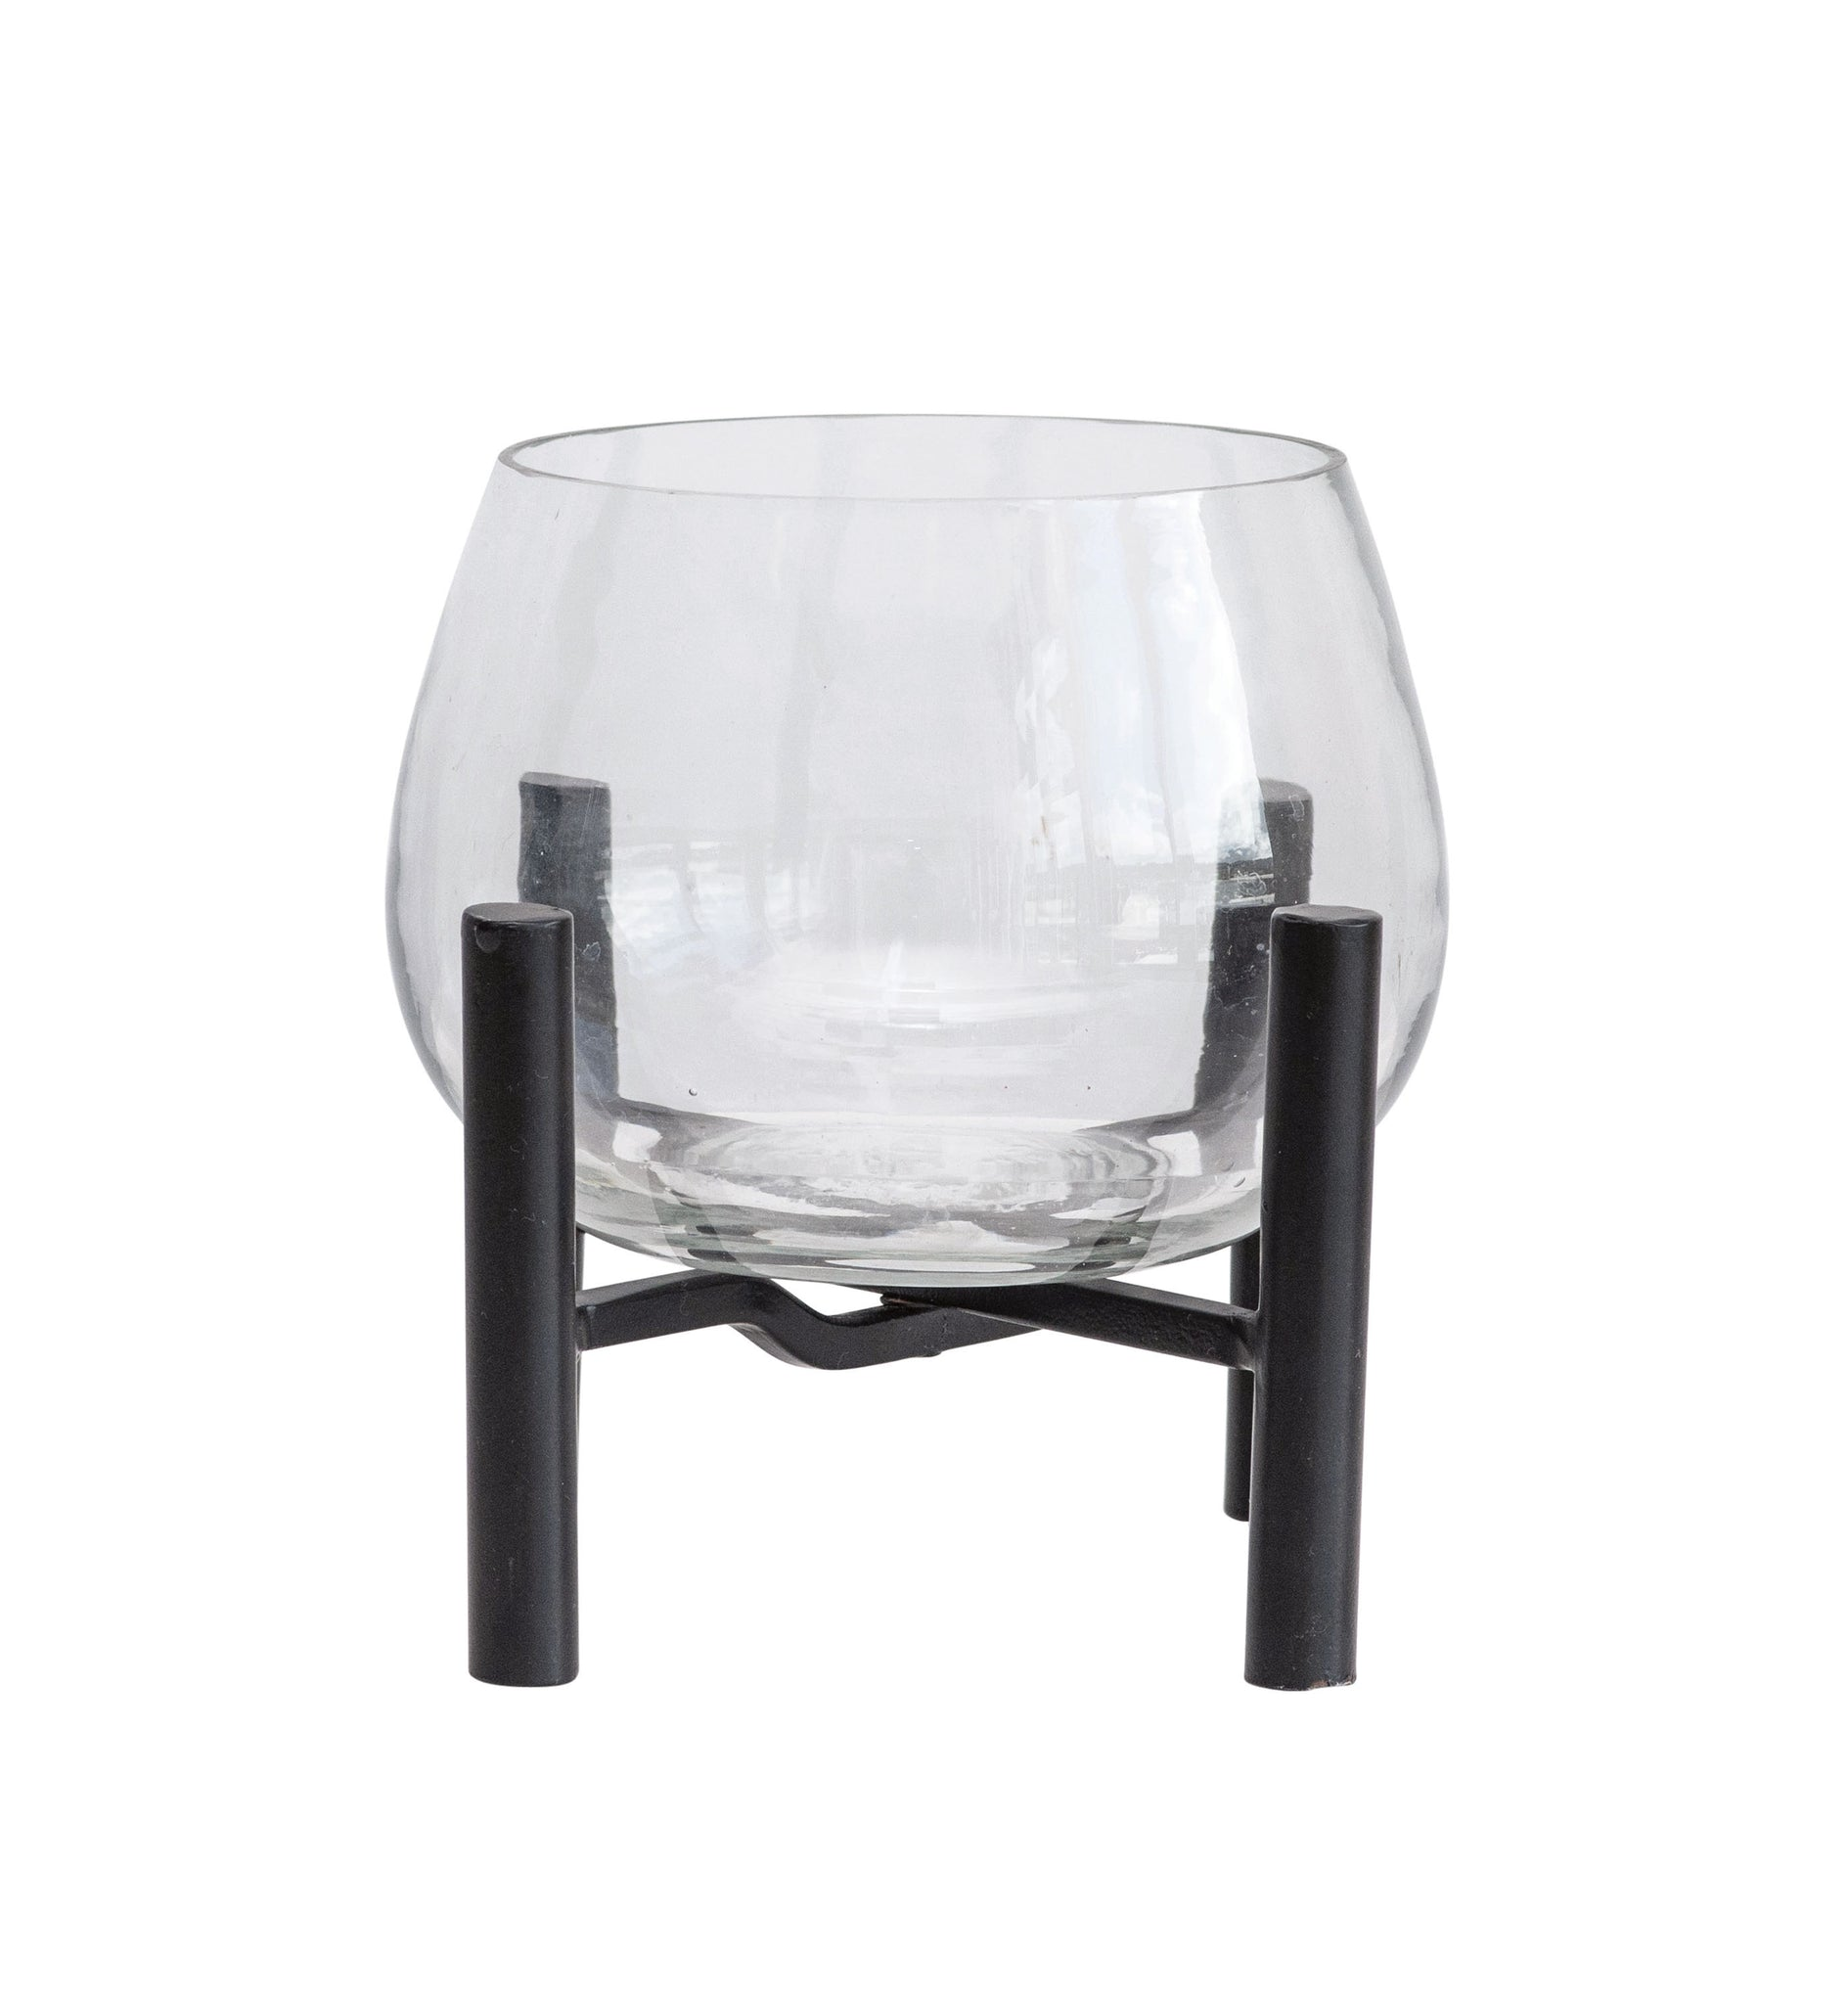 Small Clear Glass Planter on Black Metal Stand (Set of 2 Pieces)